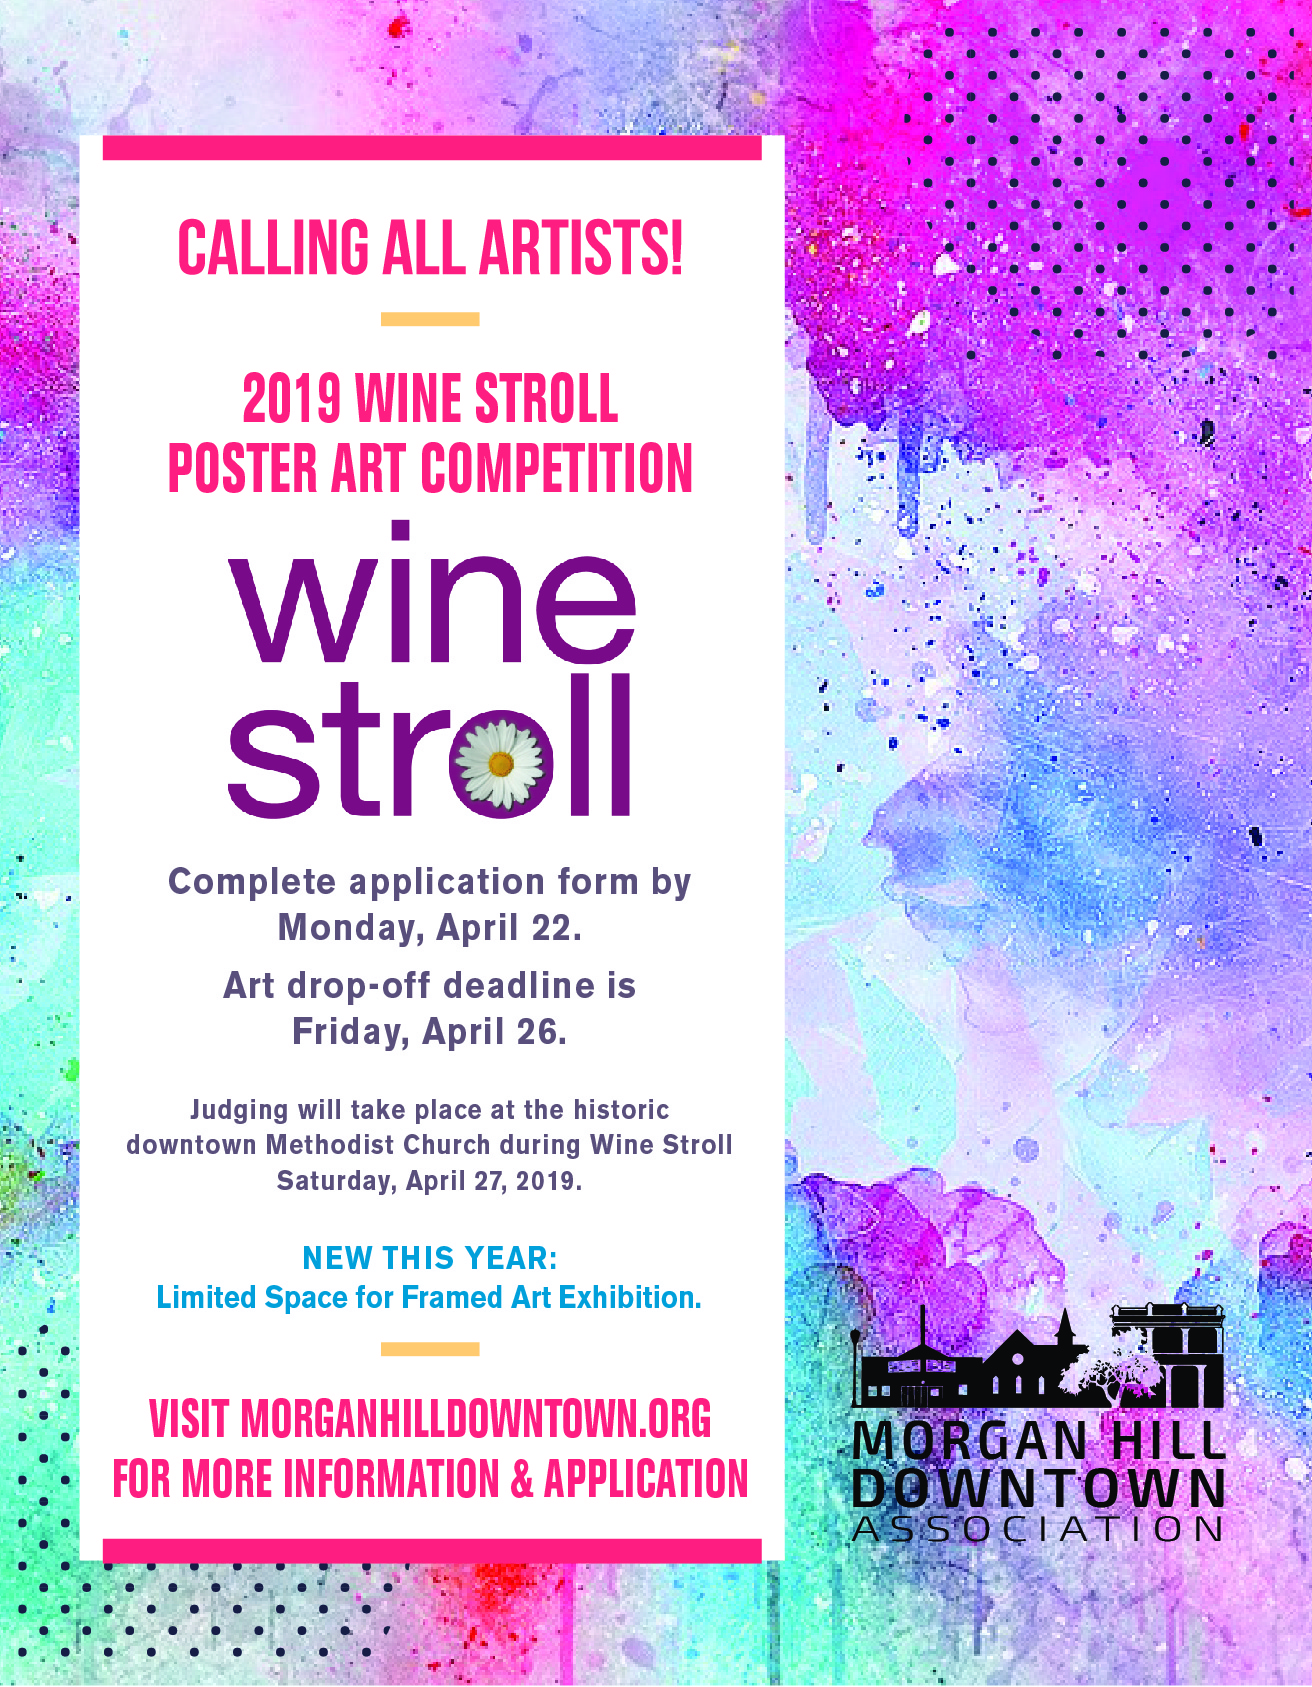 Poster Judging Form 2019 Wine Stroll Art Competition Morgan Hill Downtown